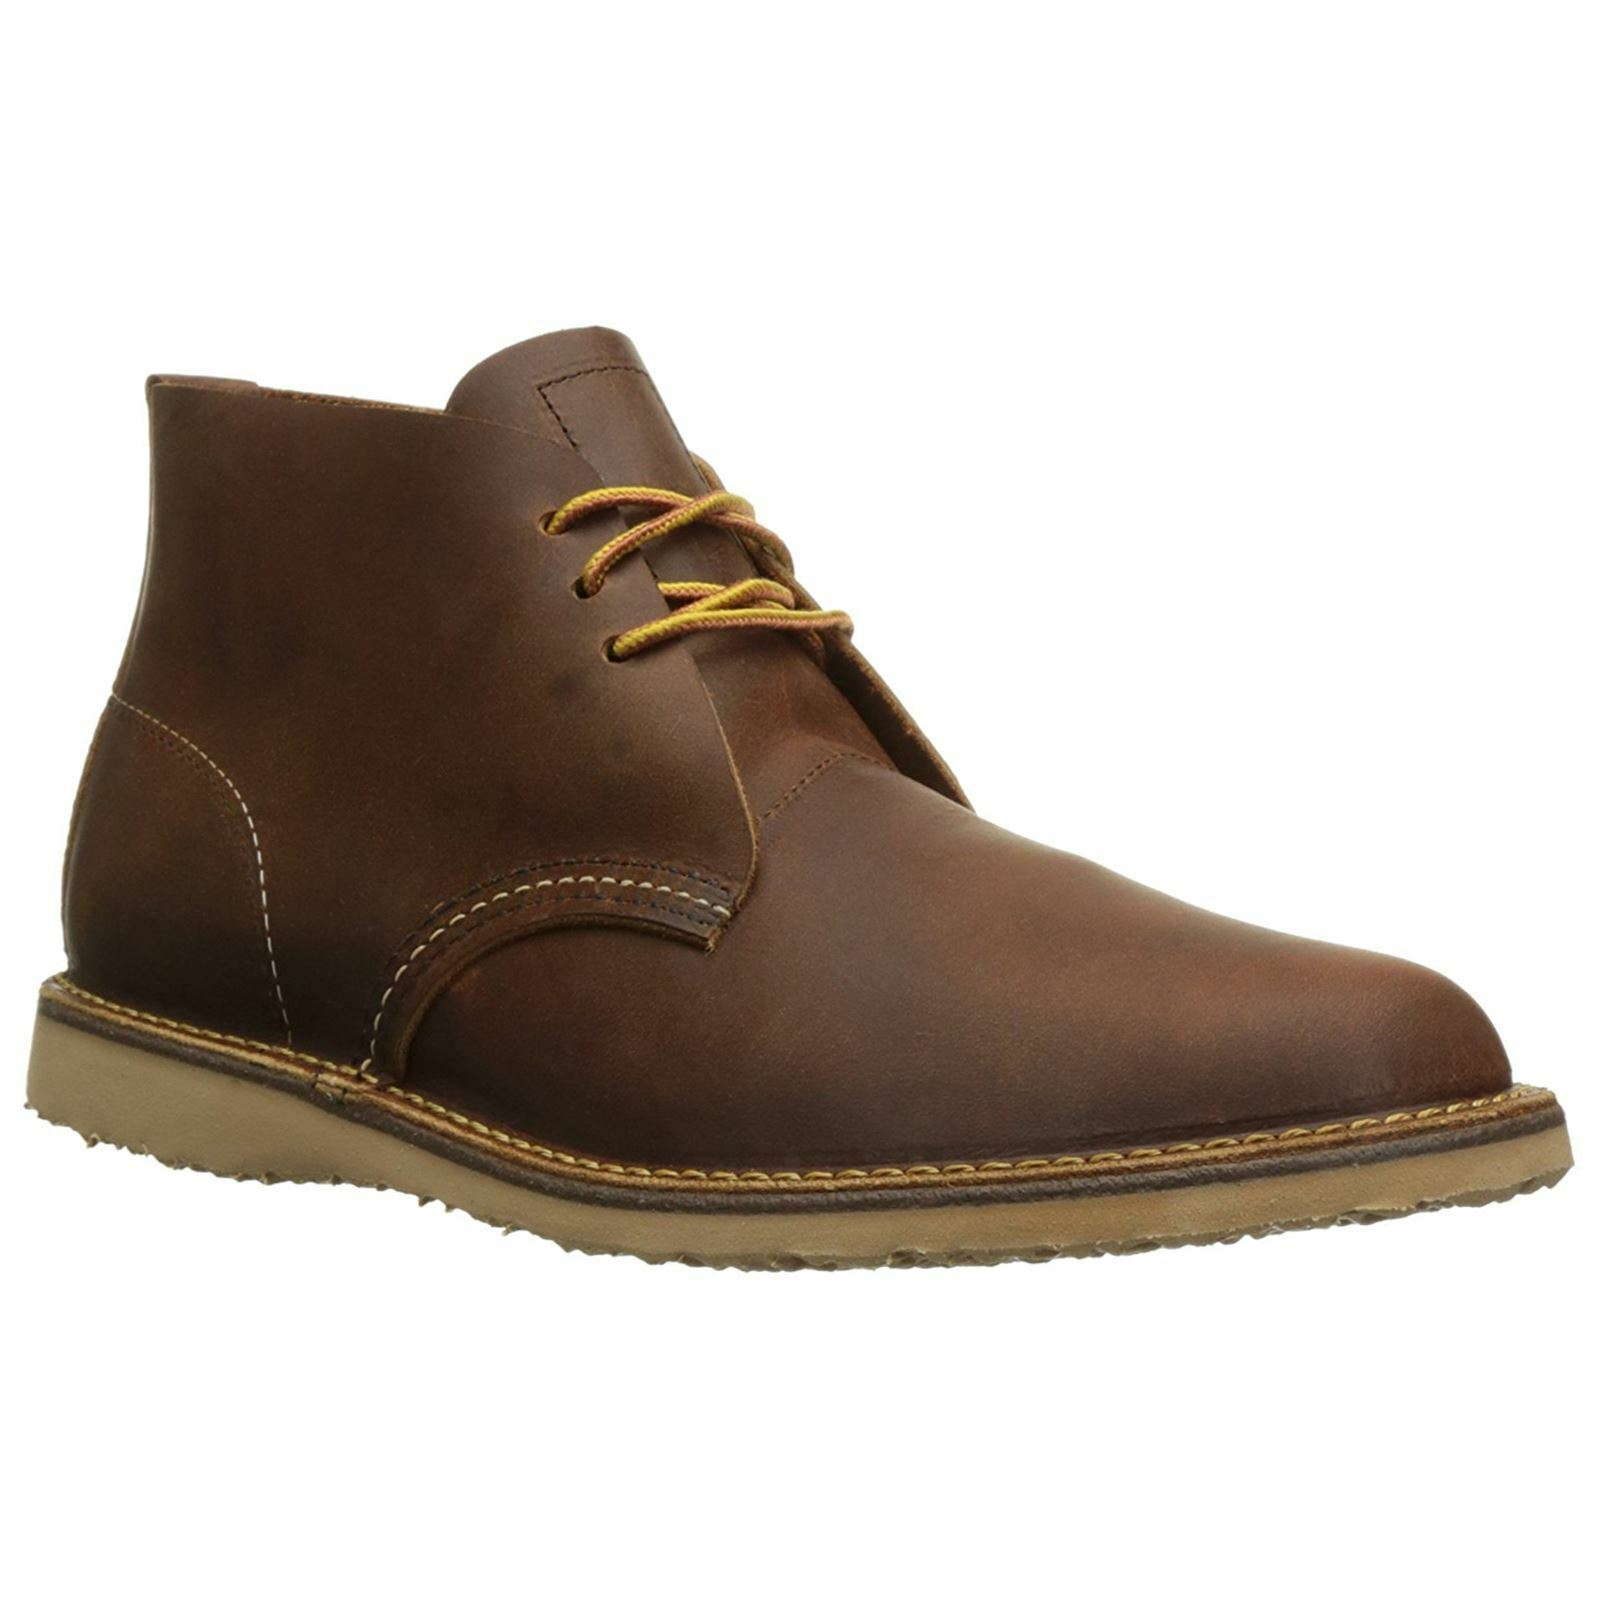 Red Wing Weekender Chukka 3322 Copper Mens Leather Lace-up Ankle Boots